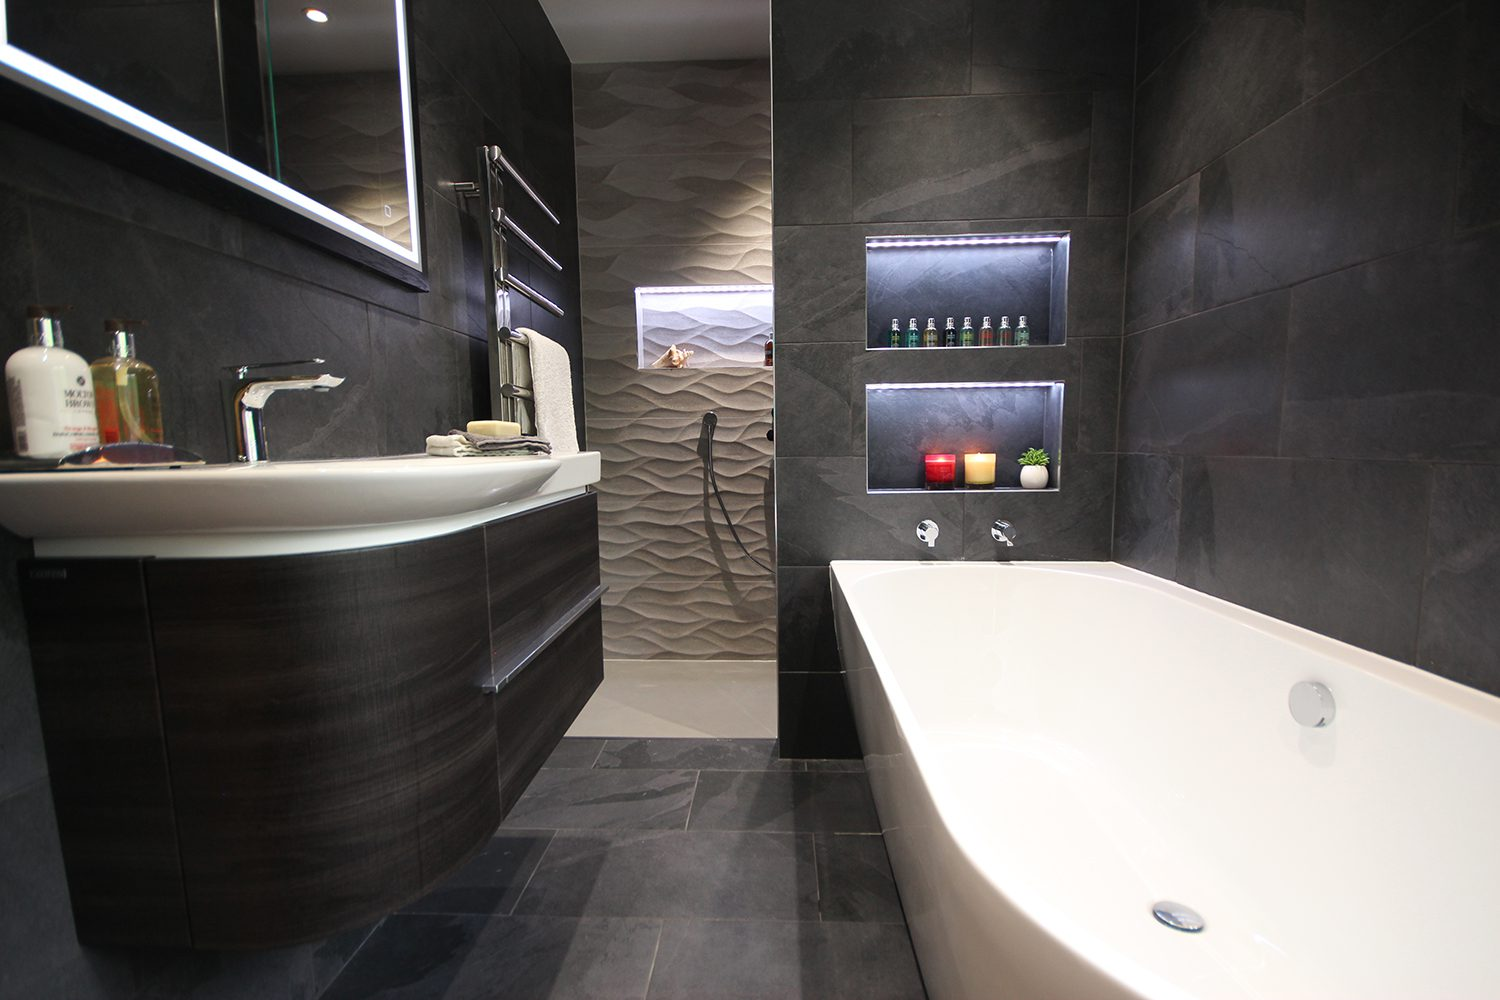 Stone and Chrome monochrome porcelain bathroom